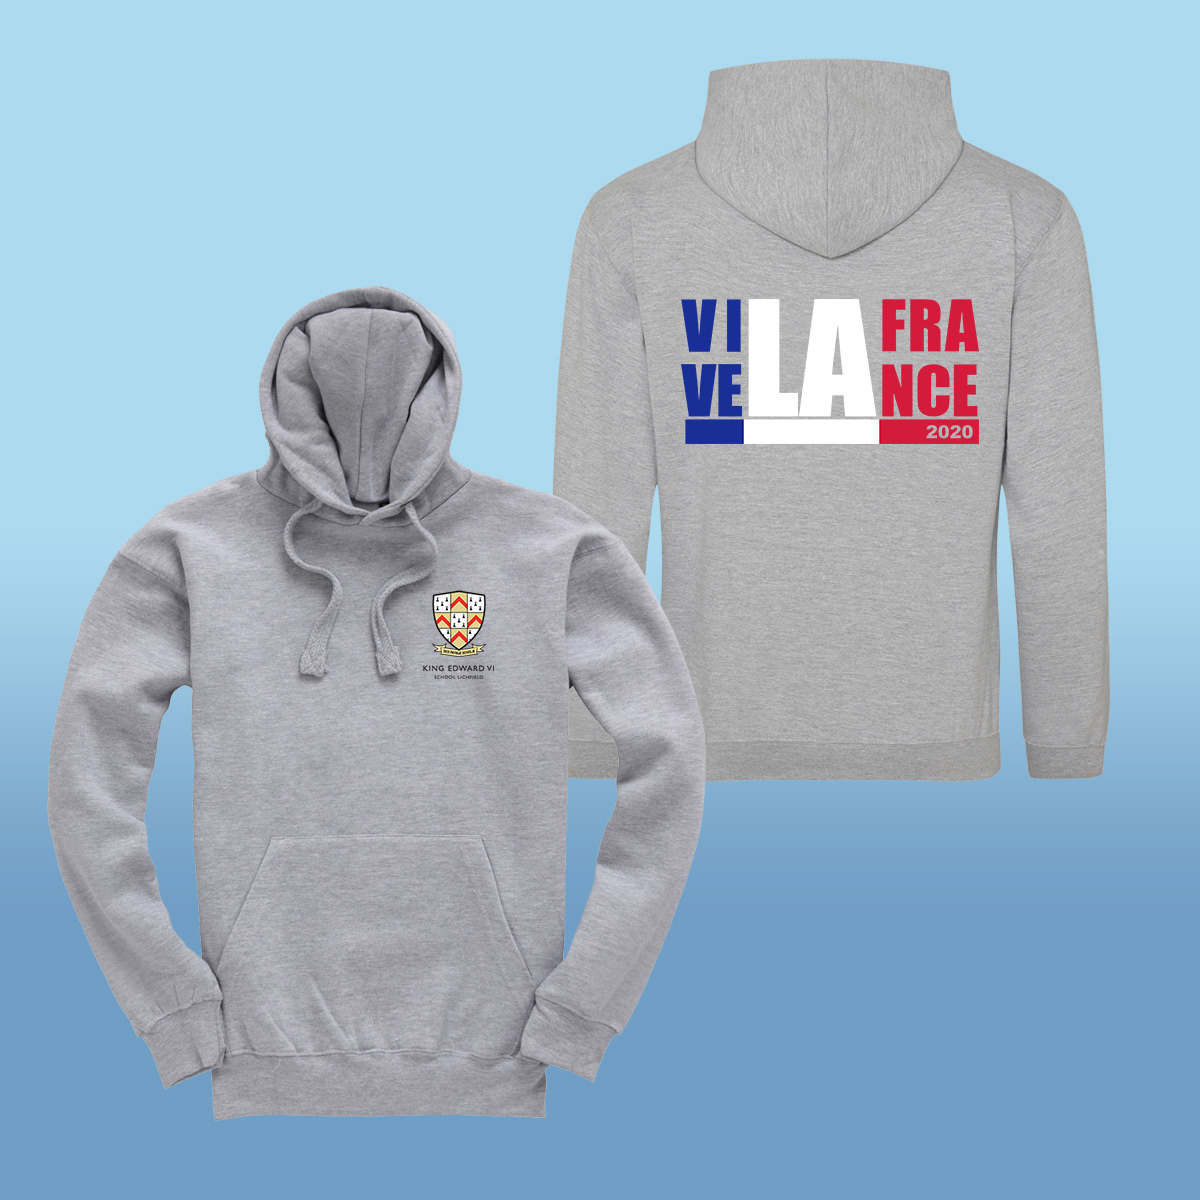 King Edward Vi School France Trip 2020 Hoodies